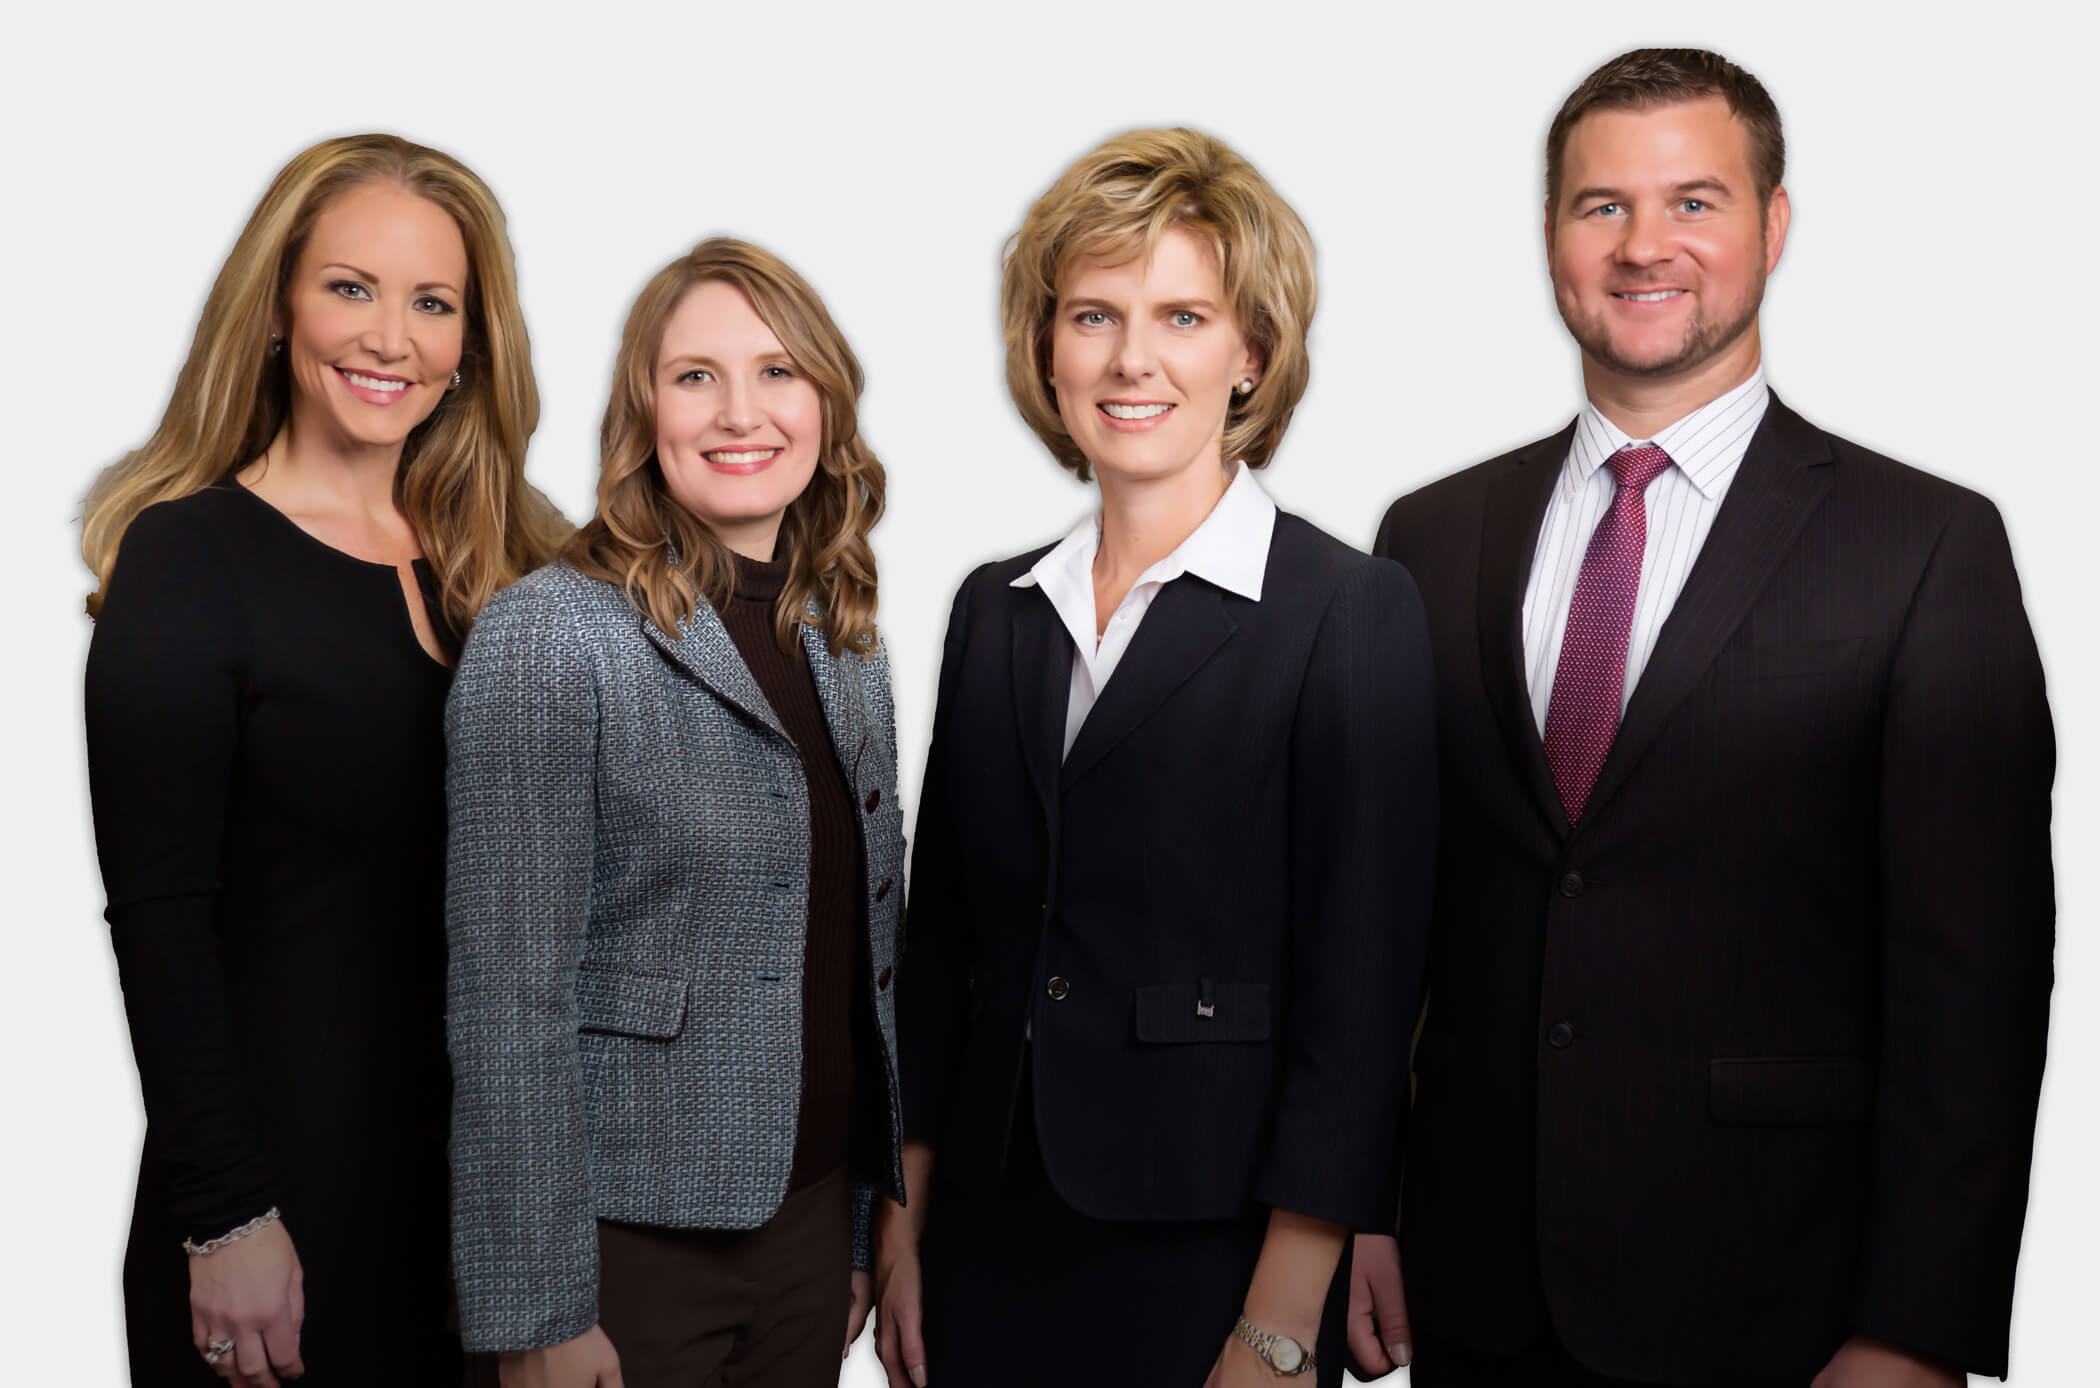 peterson baker a nevada law firm team photo